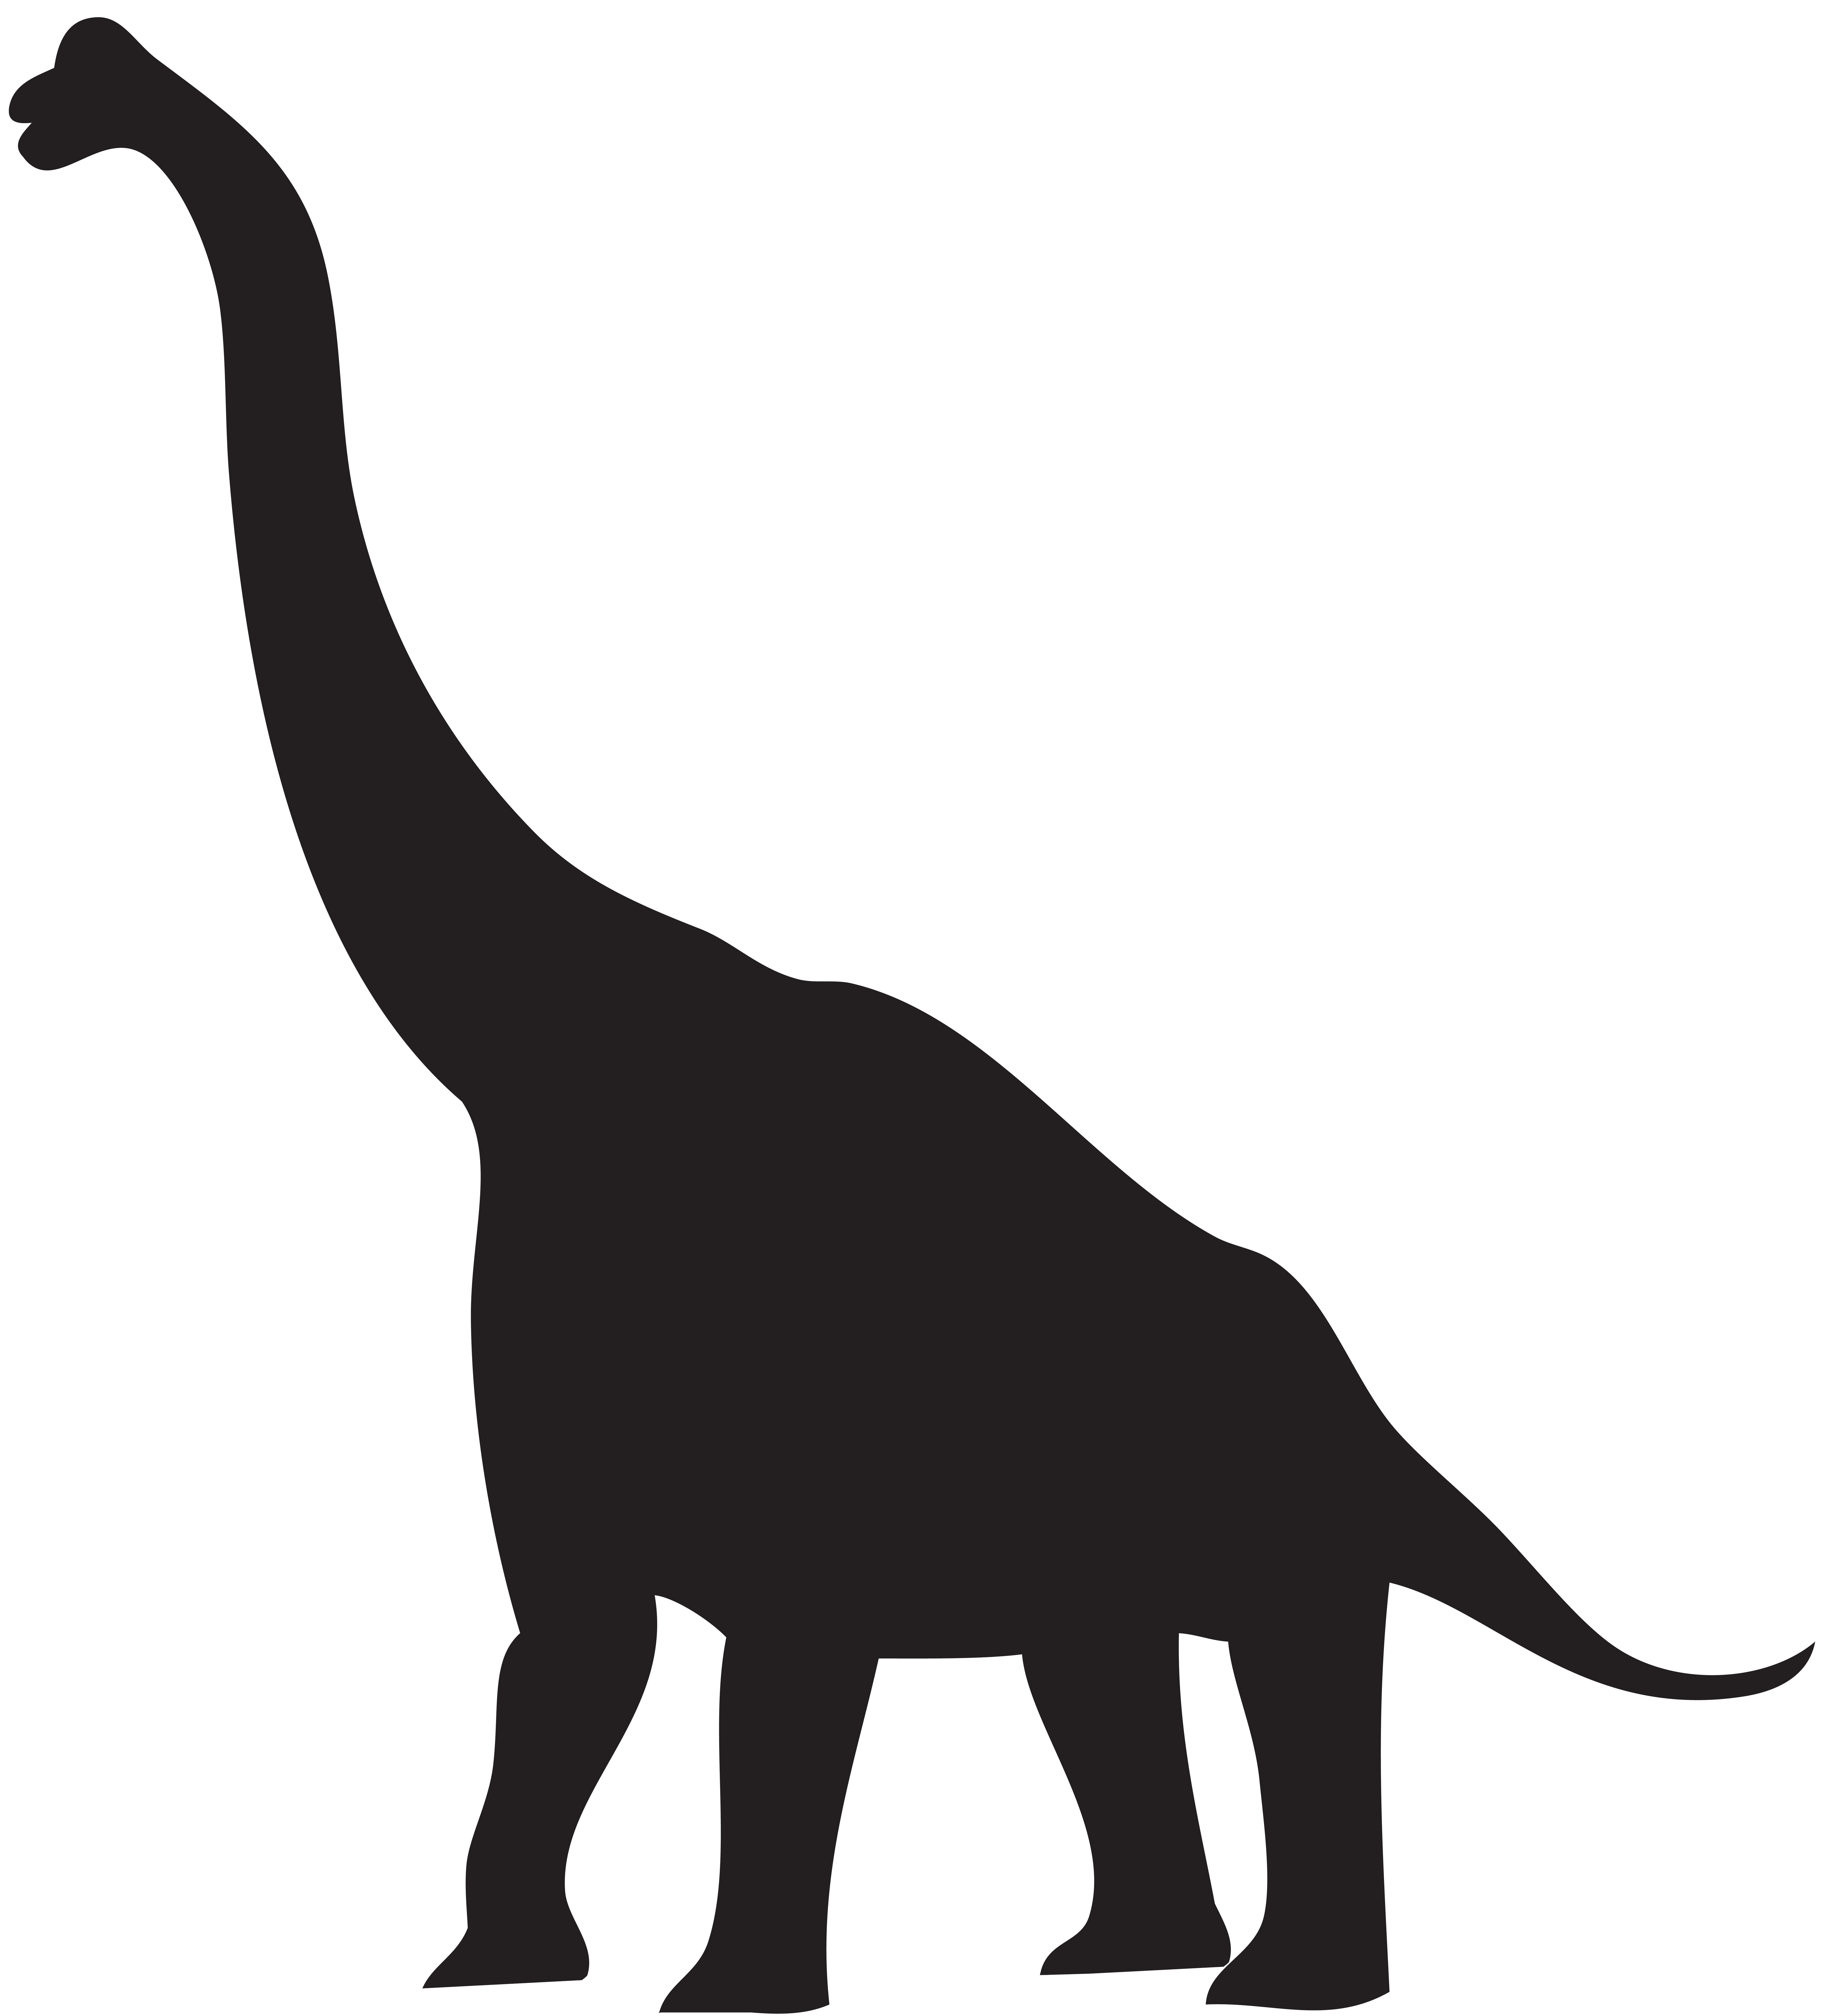 Dinosaur Silhouette PNG Clip Art Image.